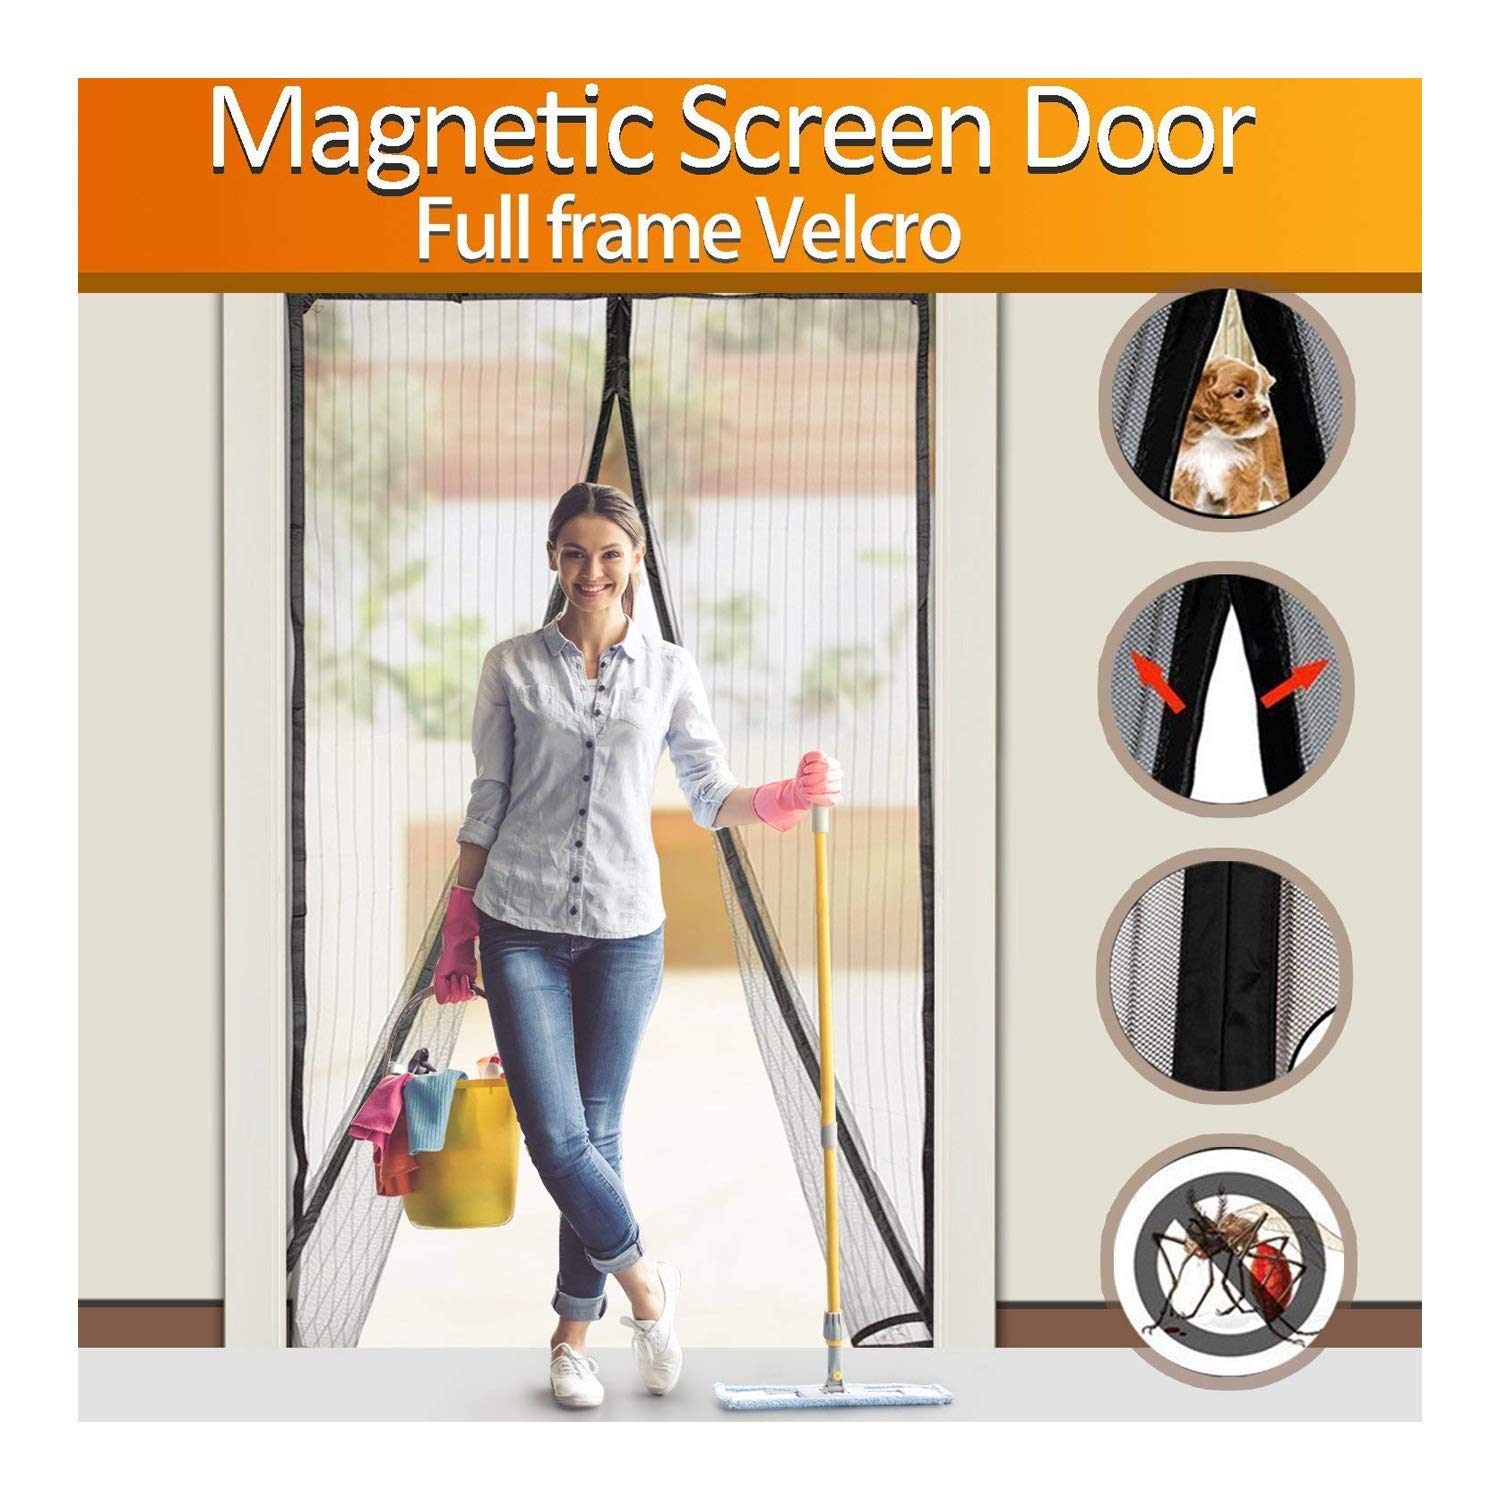 FYLINA Magnetic Screen Door Heavy Duty Mesh Curtain Screen and Full Frame Velcro, Top-to-Bottom Seal No Mosquitos - Fits Door Up To 34'' x 82'' MAX